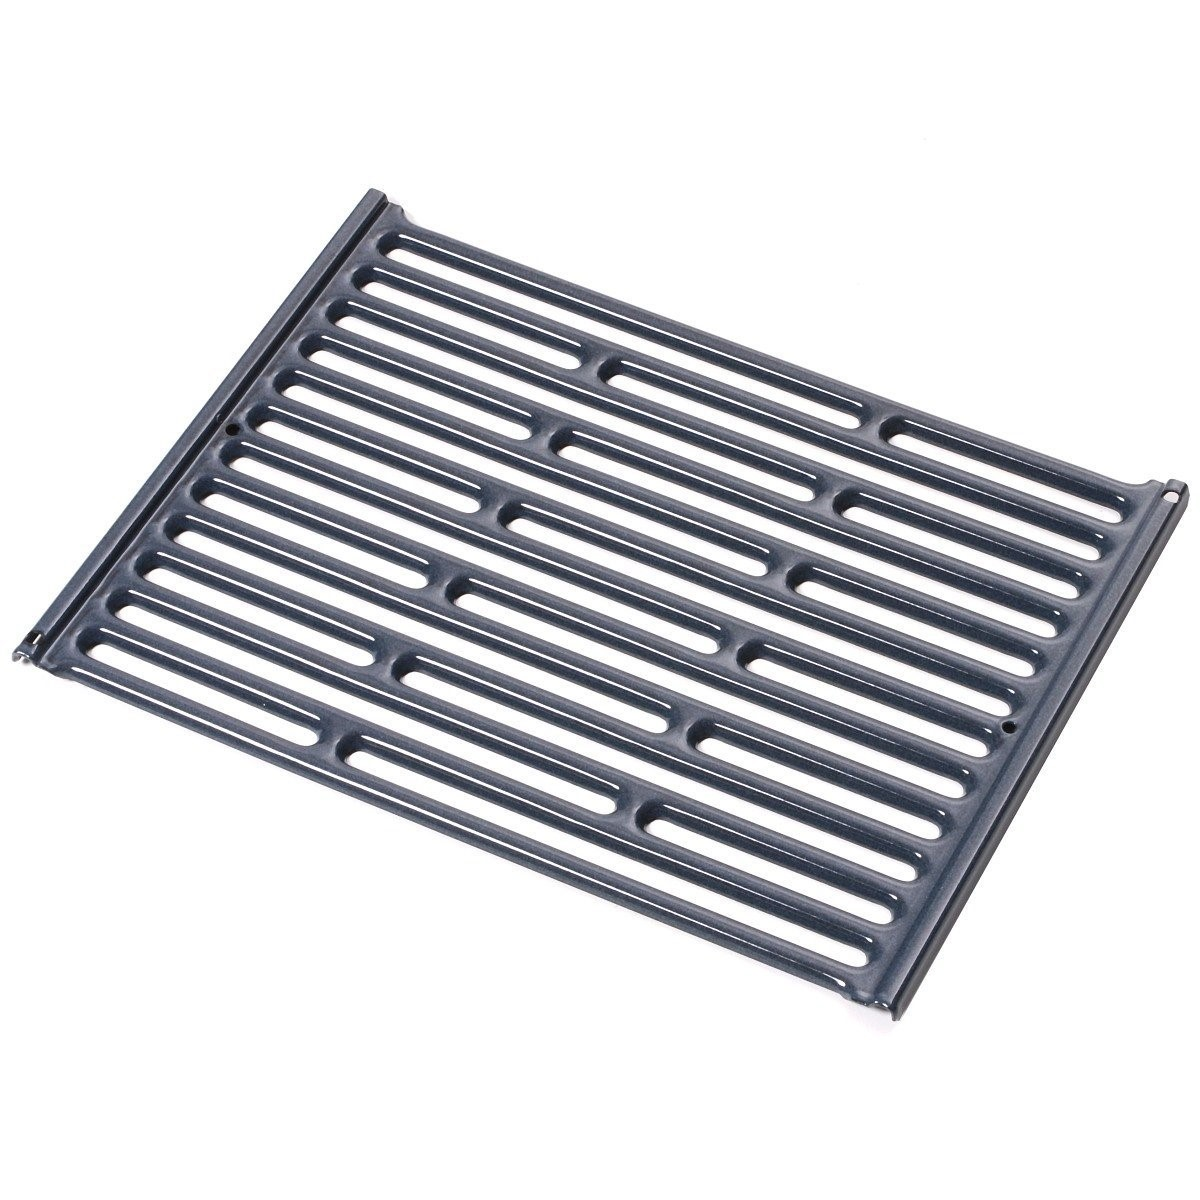 PORCELAIN-ENAMELED COOKING GRATES: SPIRIT® 200(SIDE-MOUNTED CONTROLS) AND GENESIS® SILVER A SERIES